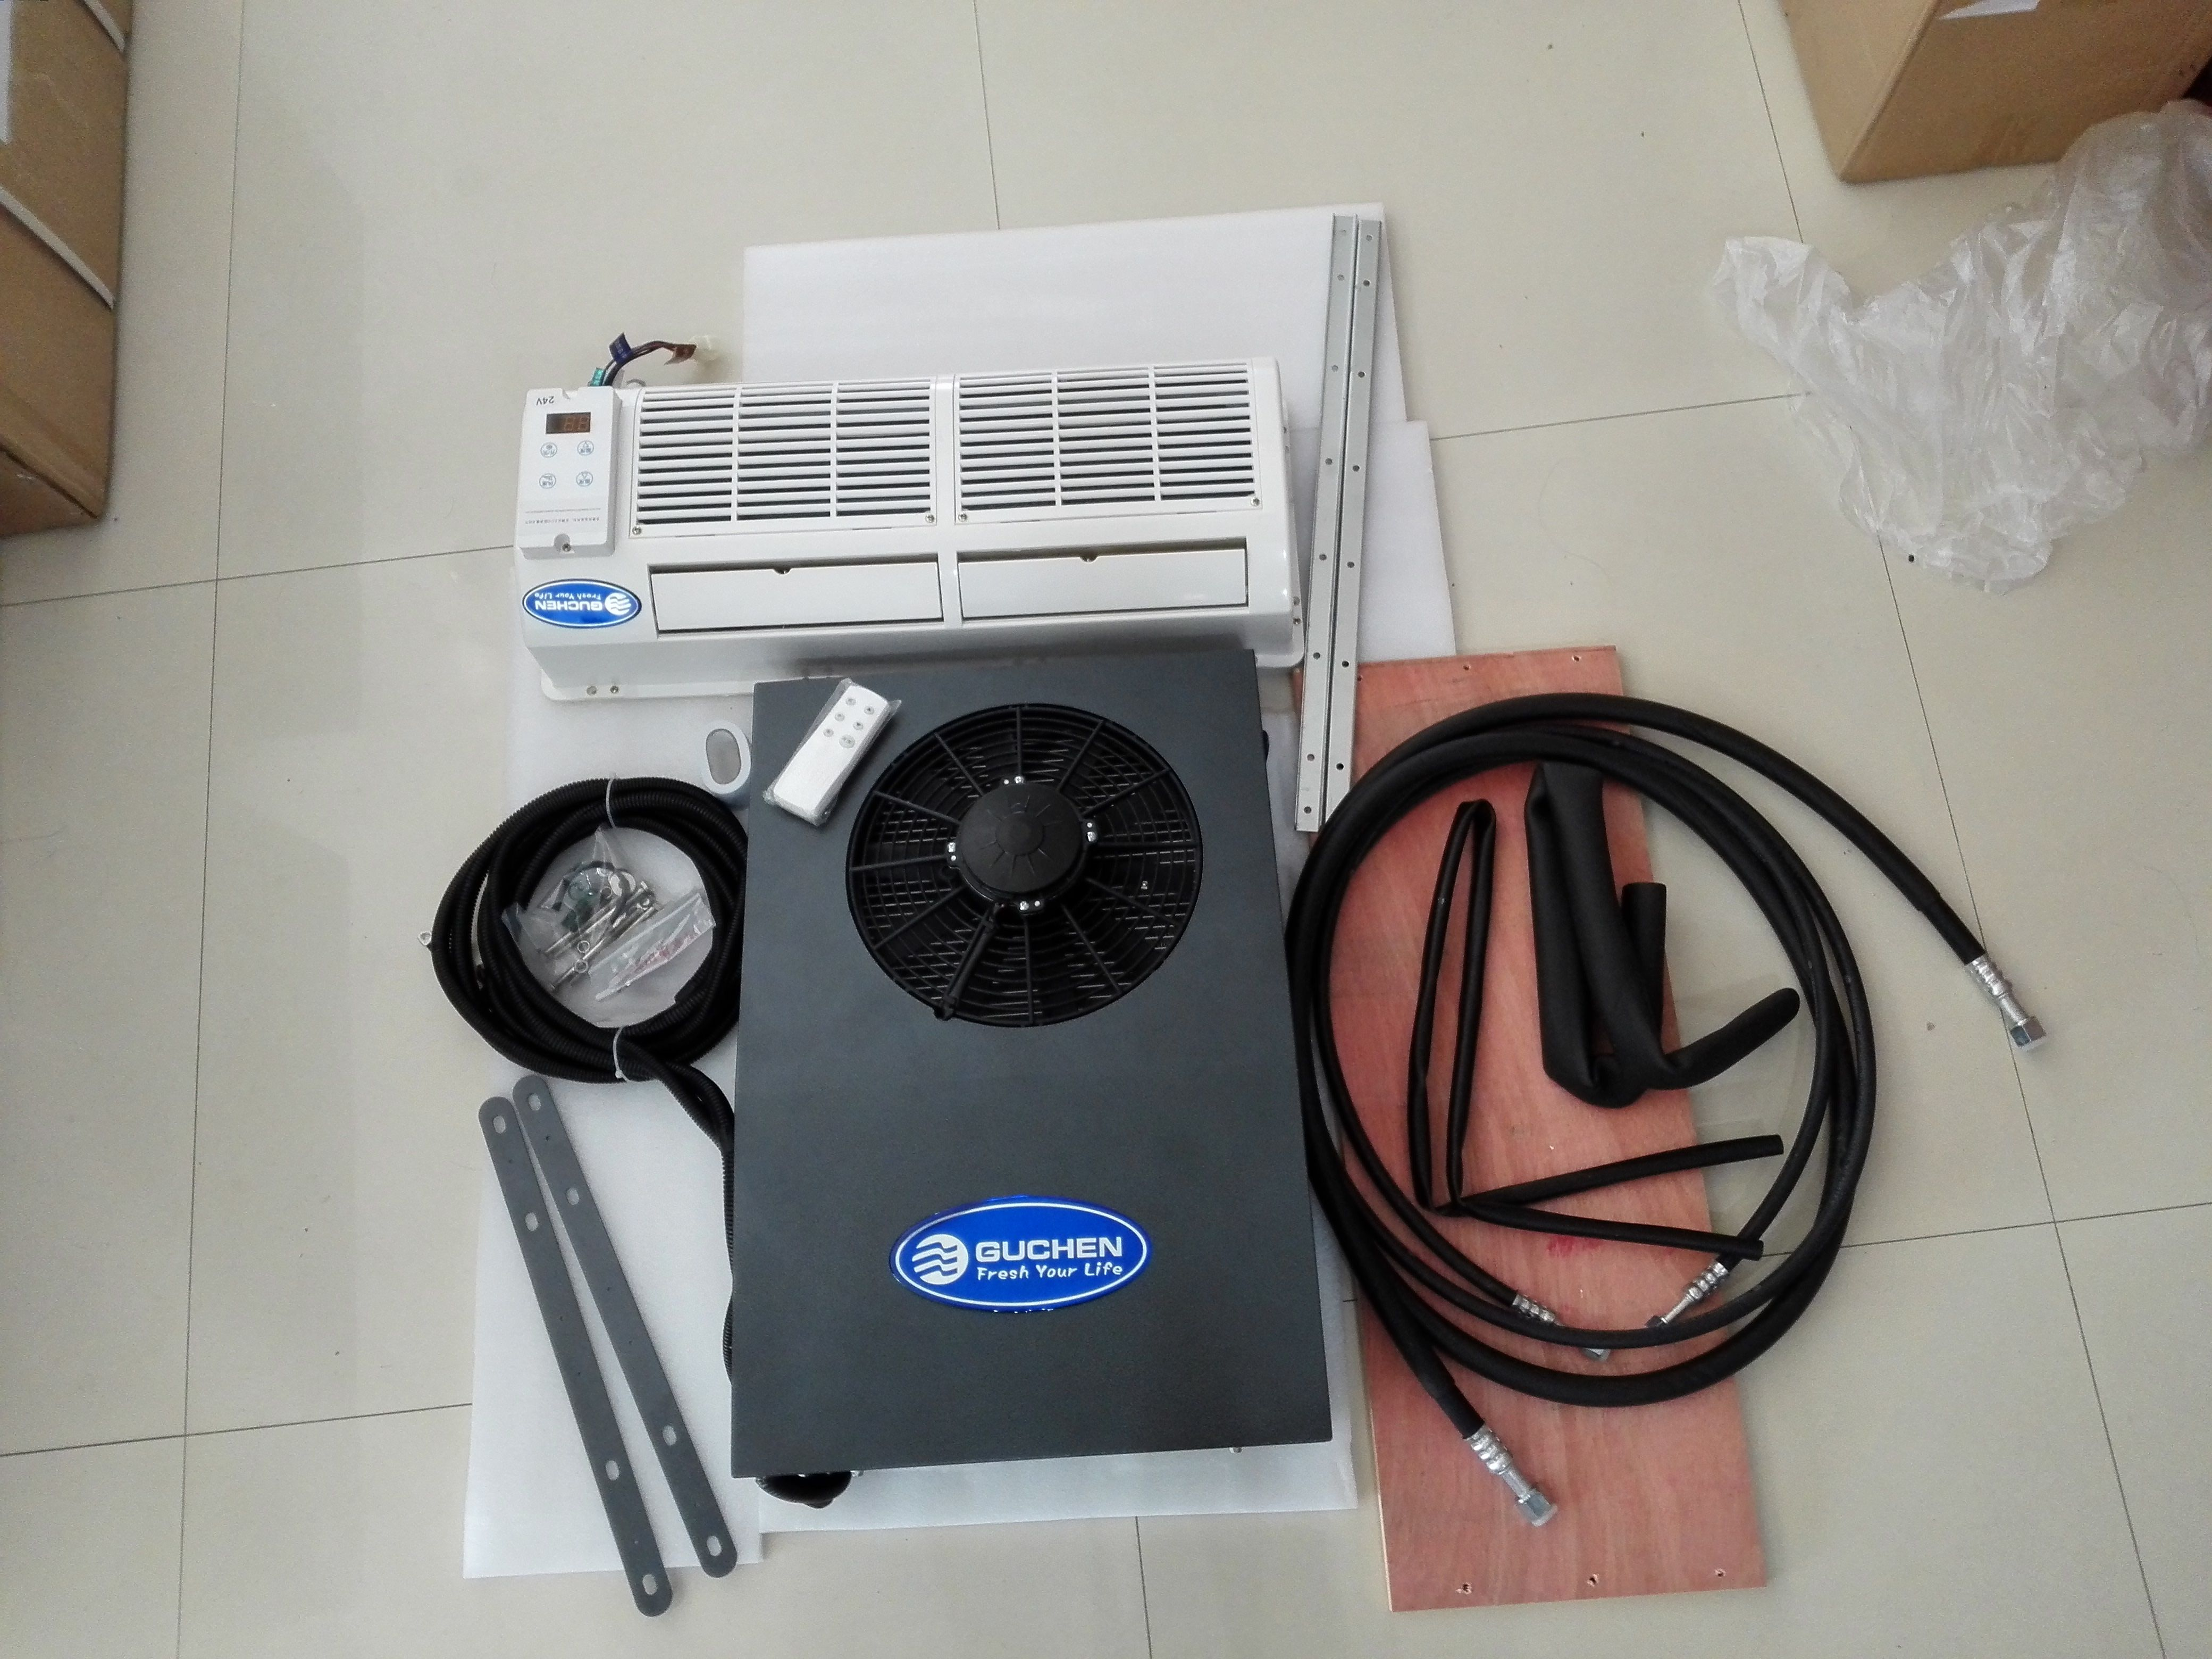 medium resolution of airpro300b van air conditioner uses low voltage protector for control panel and compressor to avoid discharging the battery below its required voltage